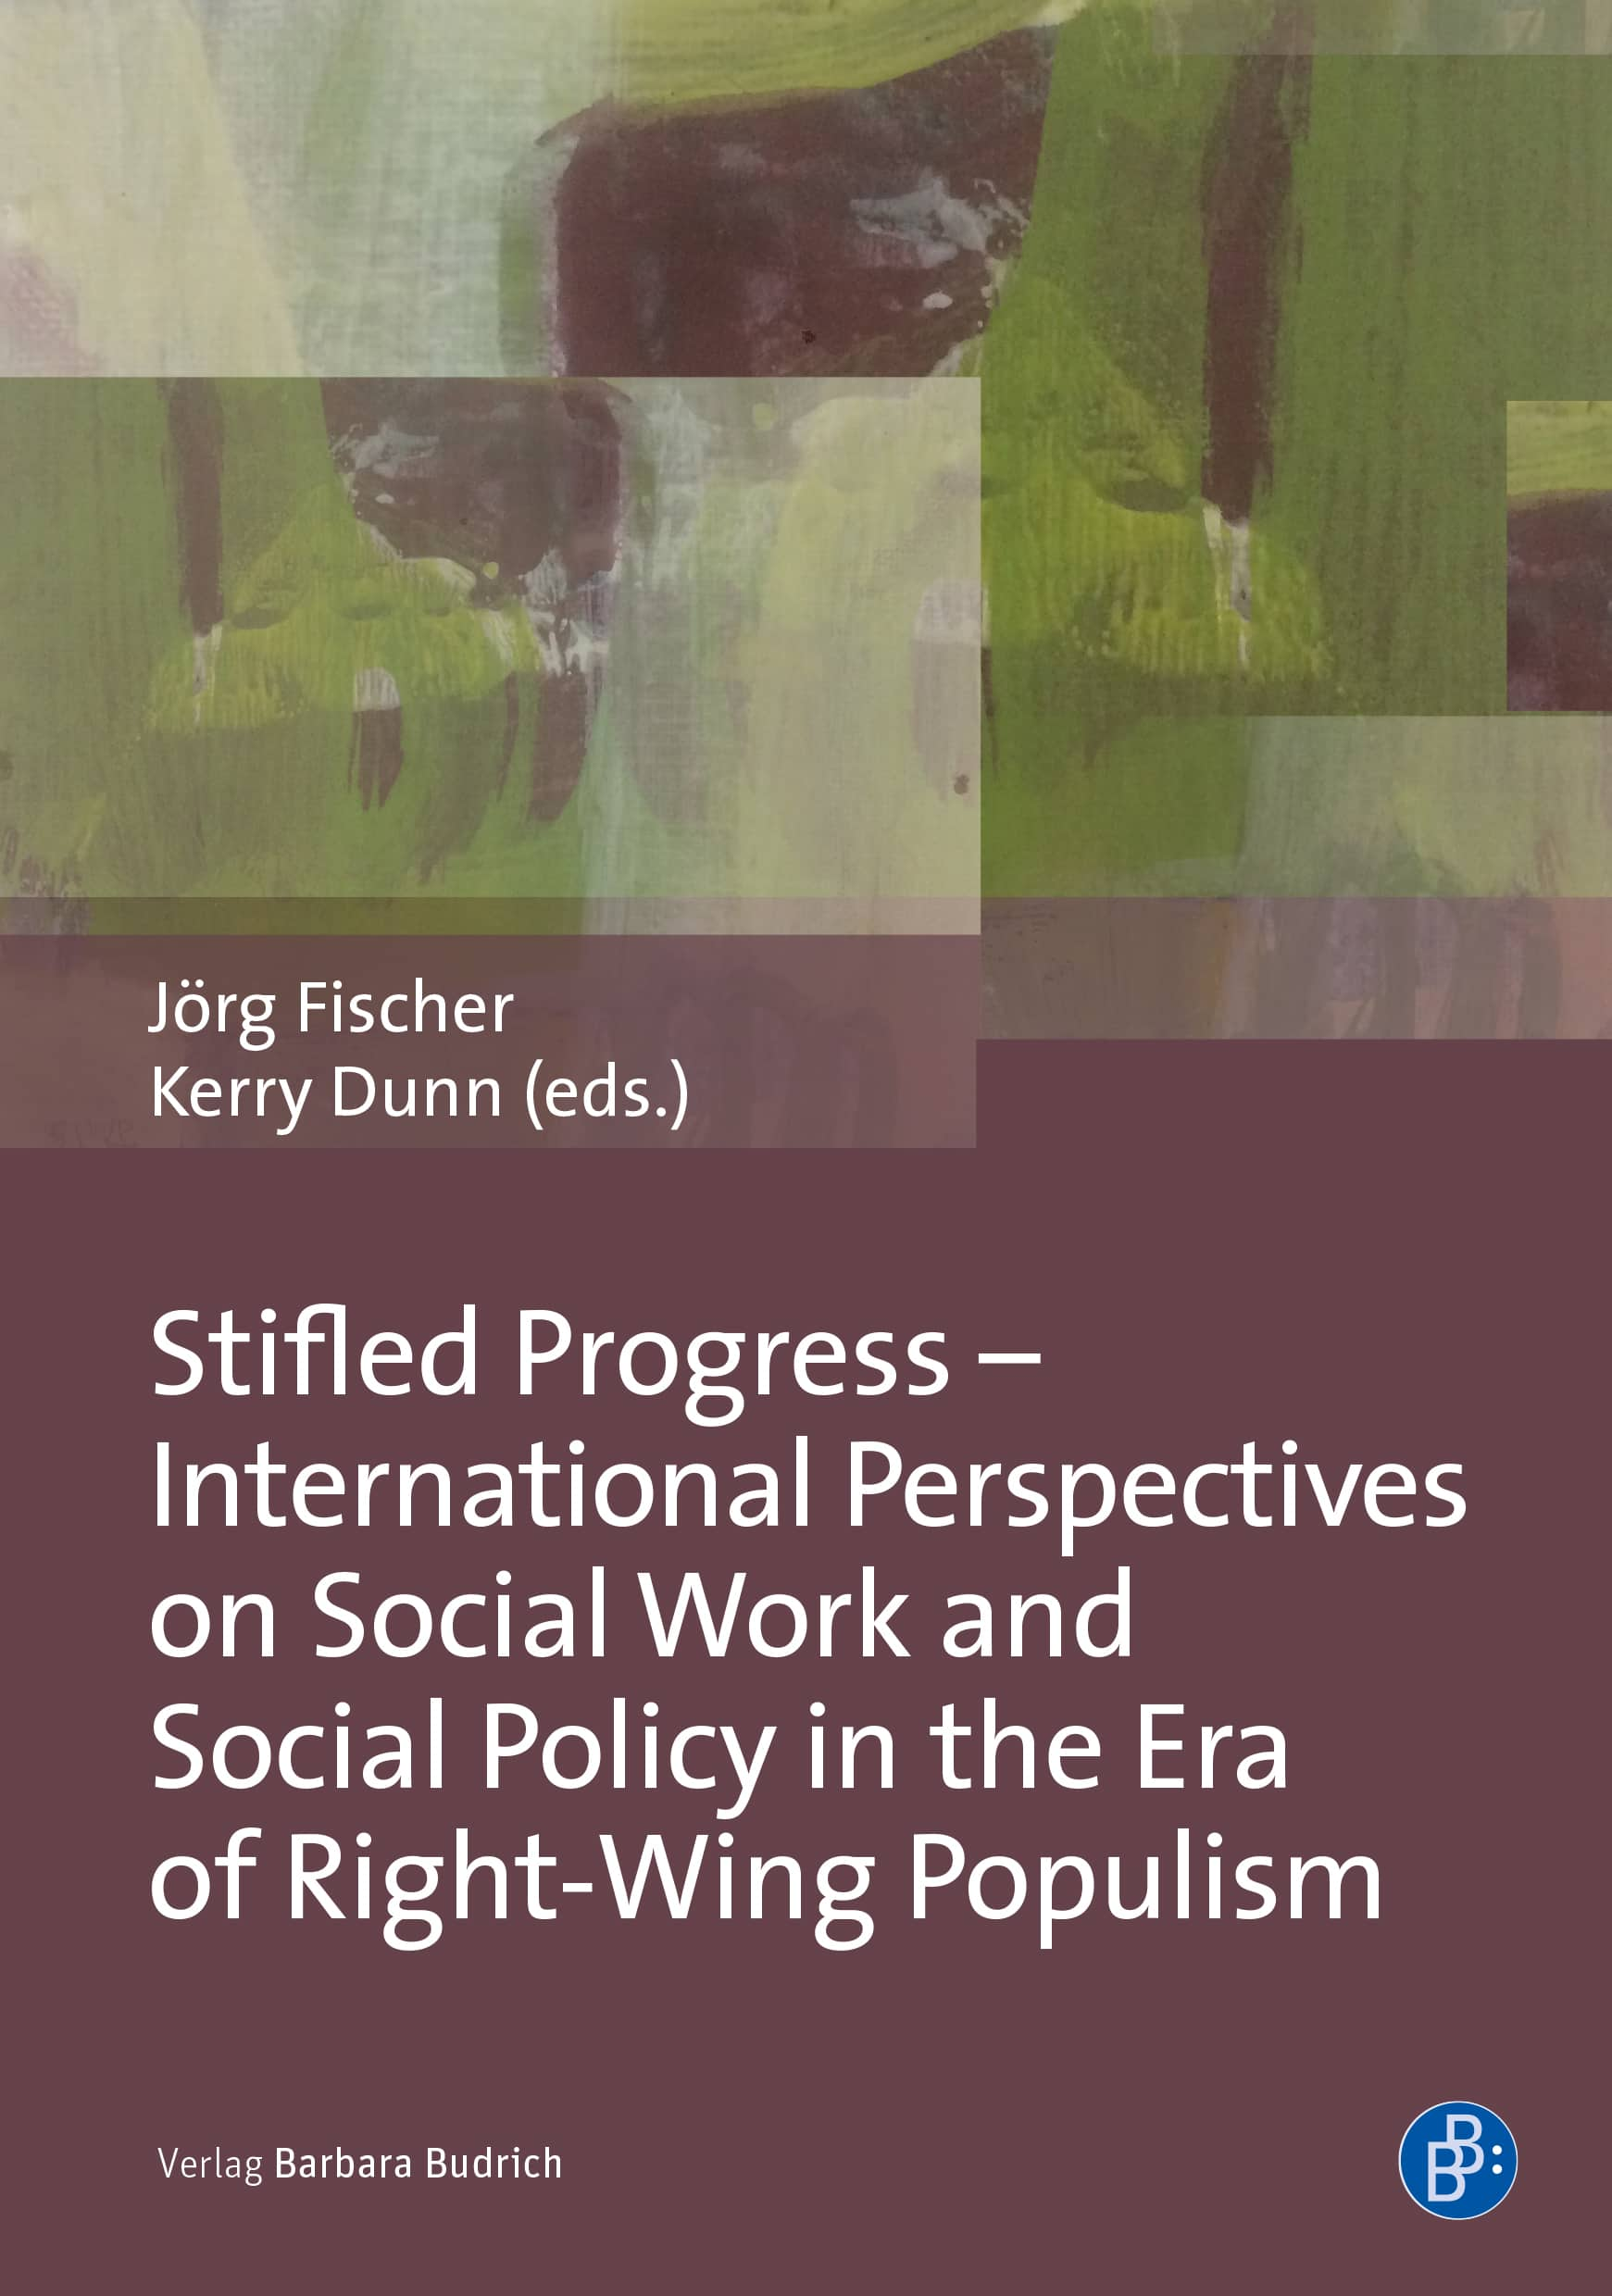 Stifled Progress – International Perspectives on Social Work and Social Policy in the Era of Right-Wing Populism